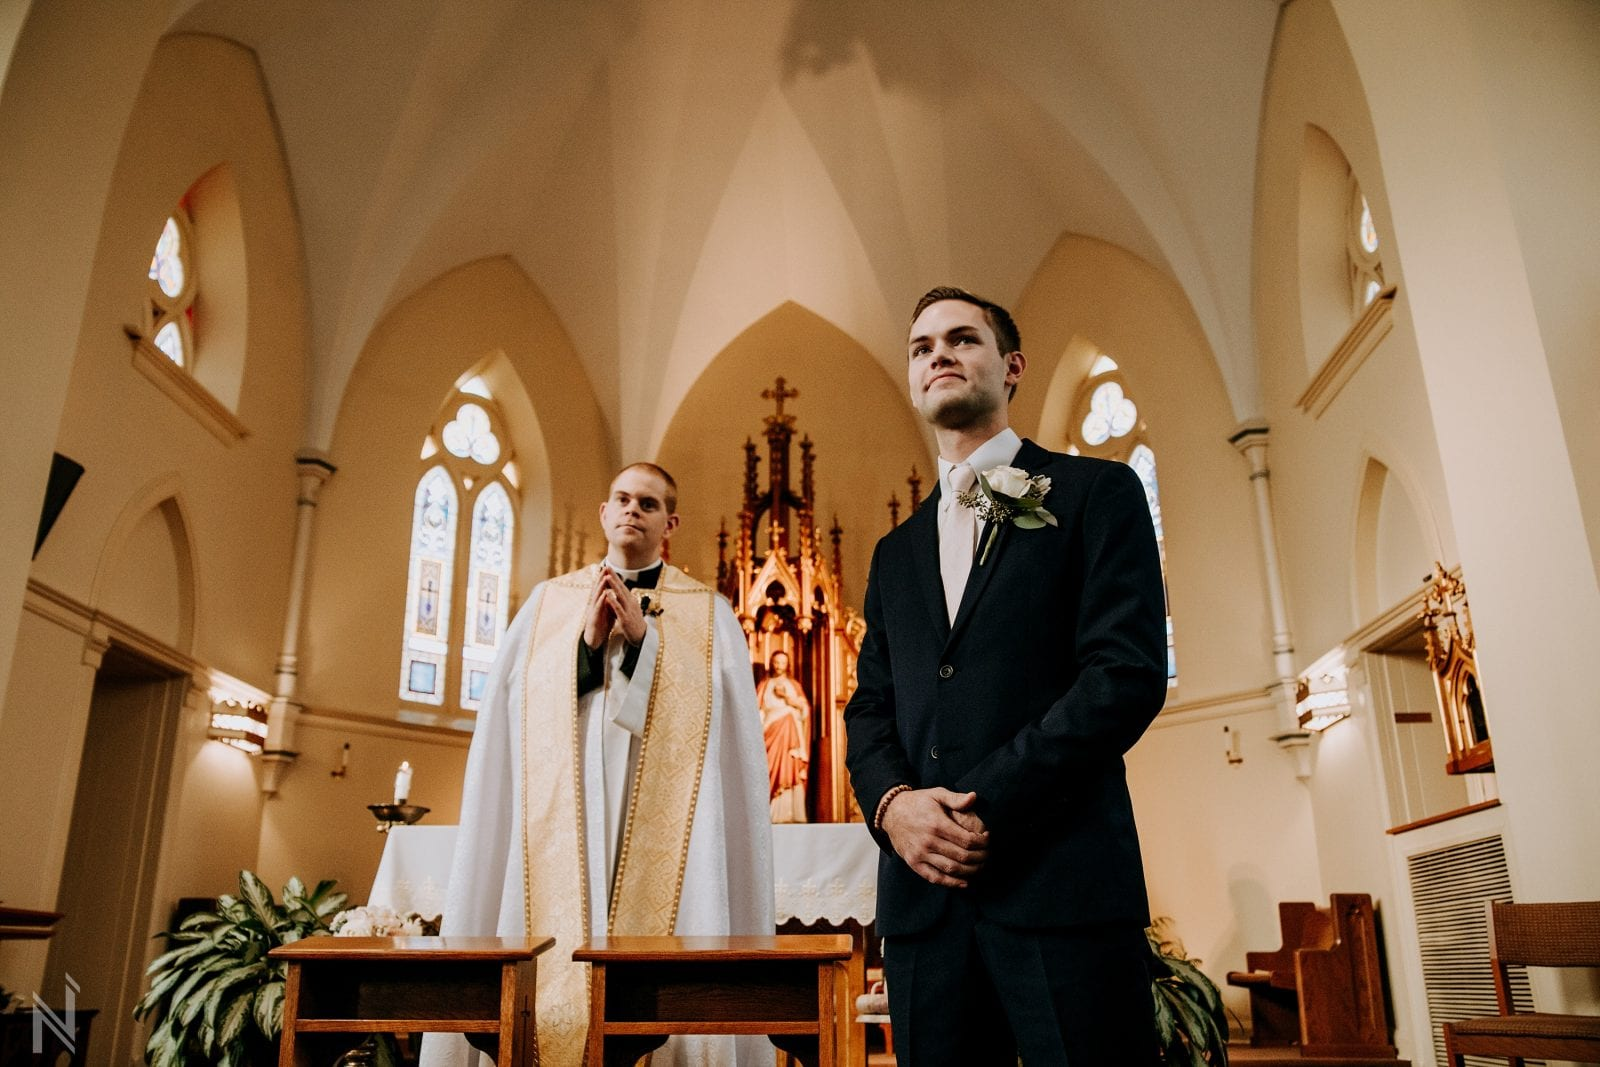 wedding photography at immaculate conception catholic church in OFallon, Missouri